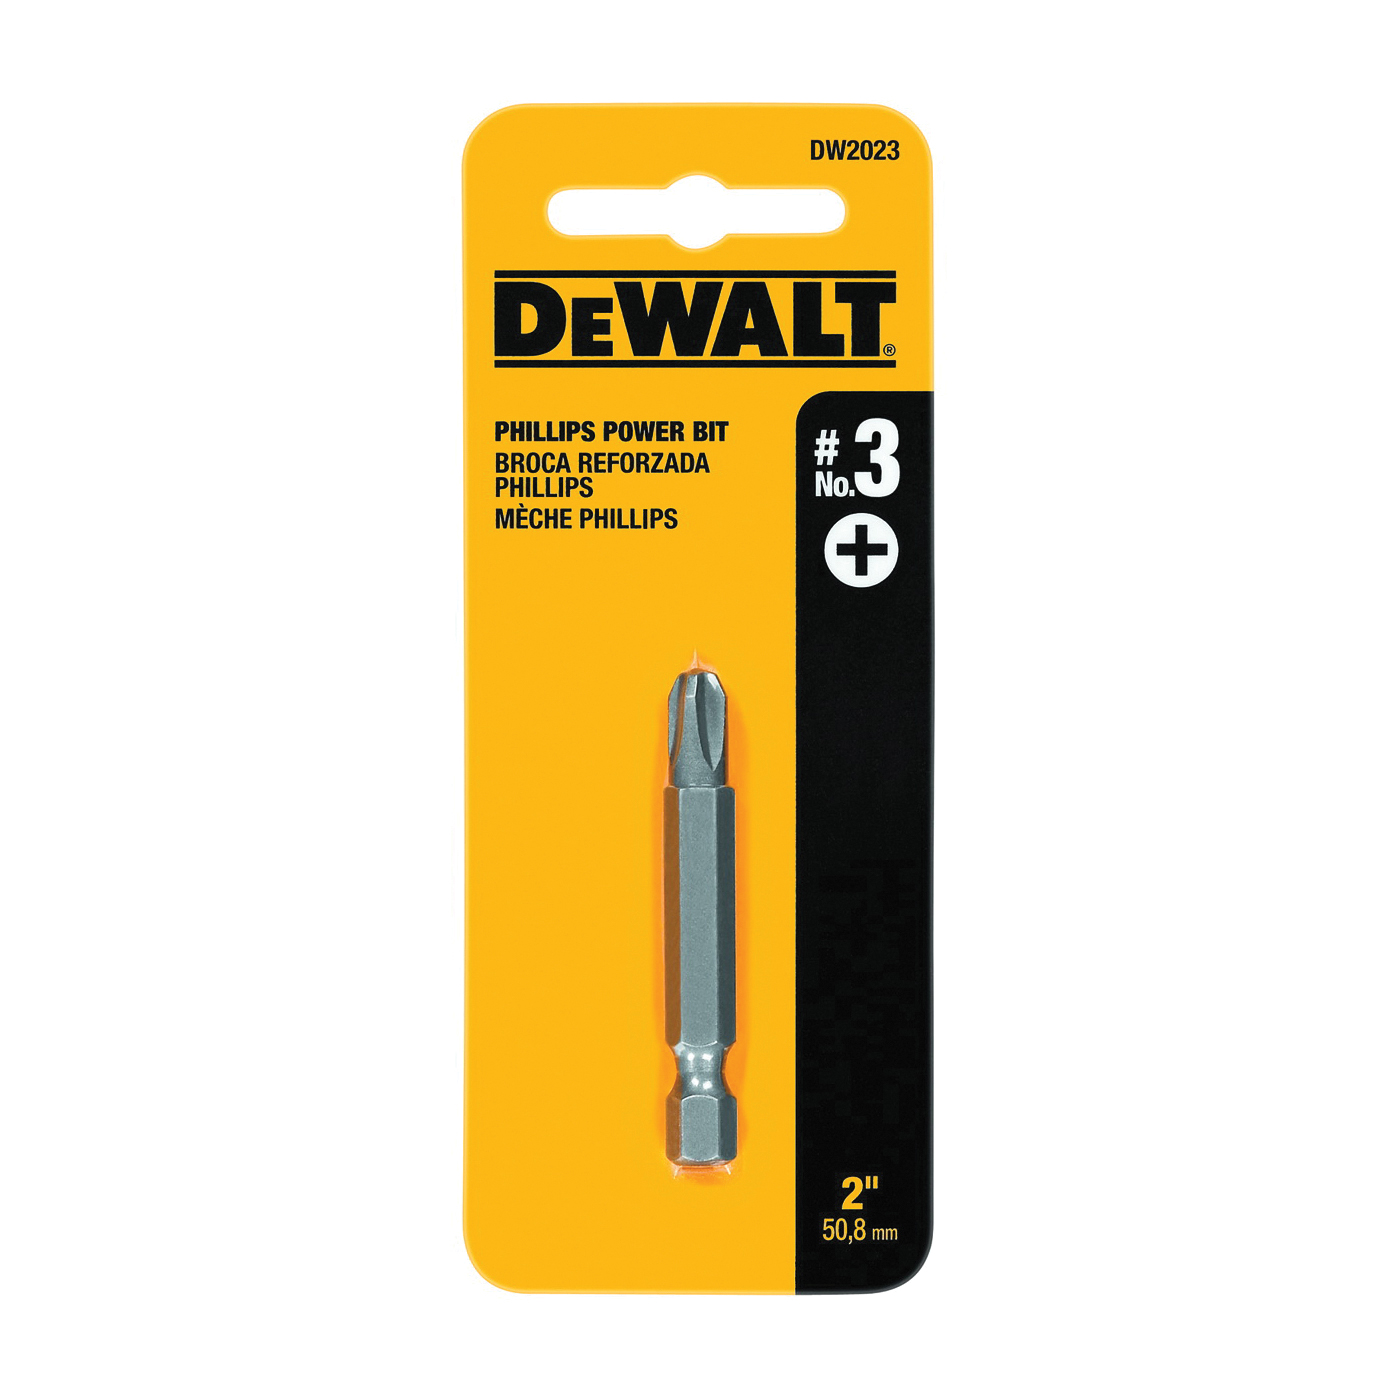 Picture of DeWALT DW2023 Power Bit, #3 Drive, Phillips Drive, 1/4 in Shank, Hex Shank, 2 in L, Steel